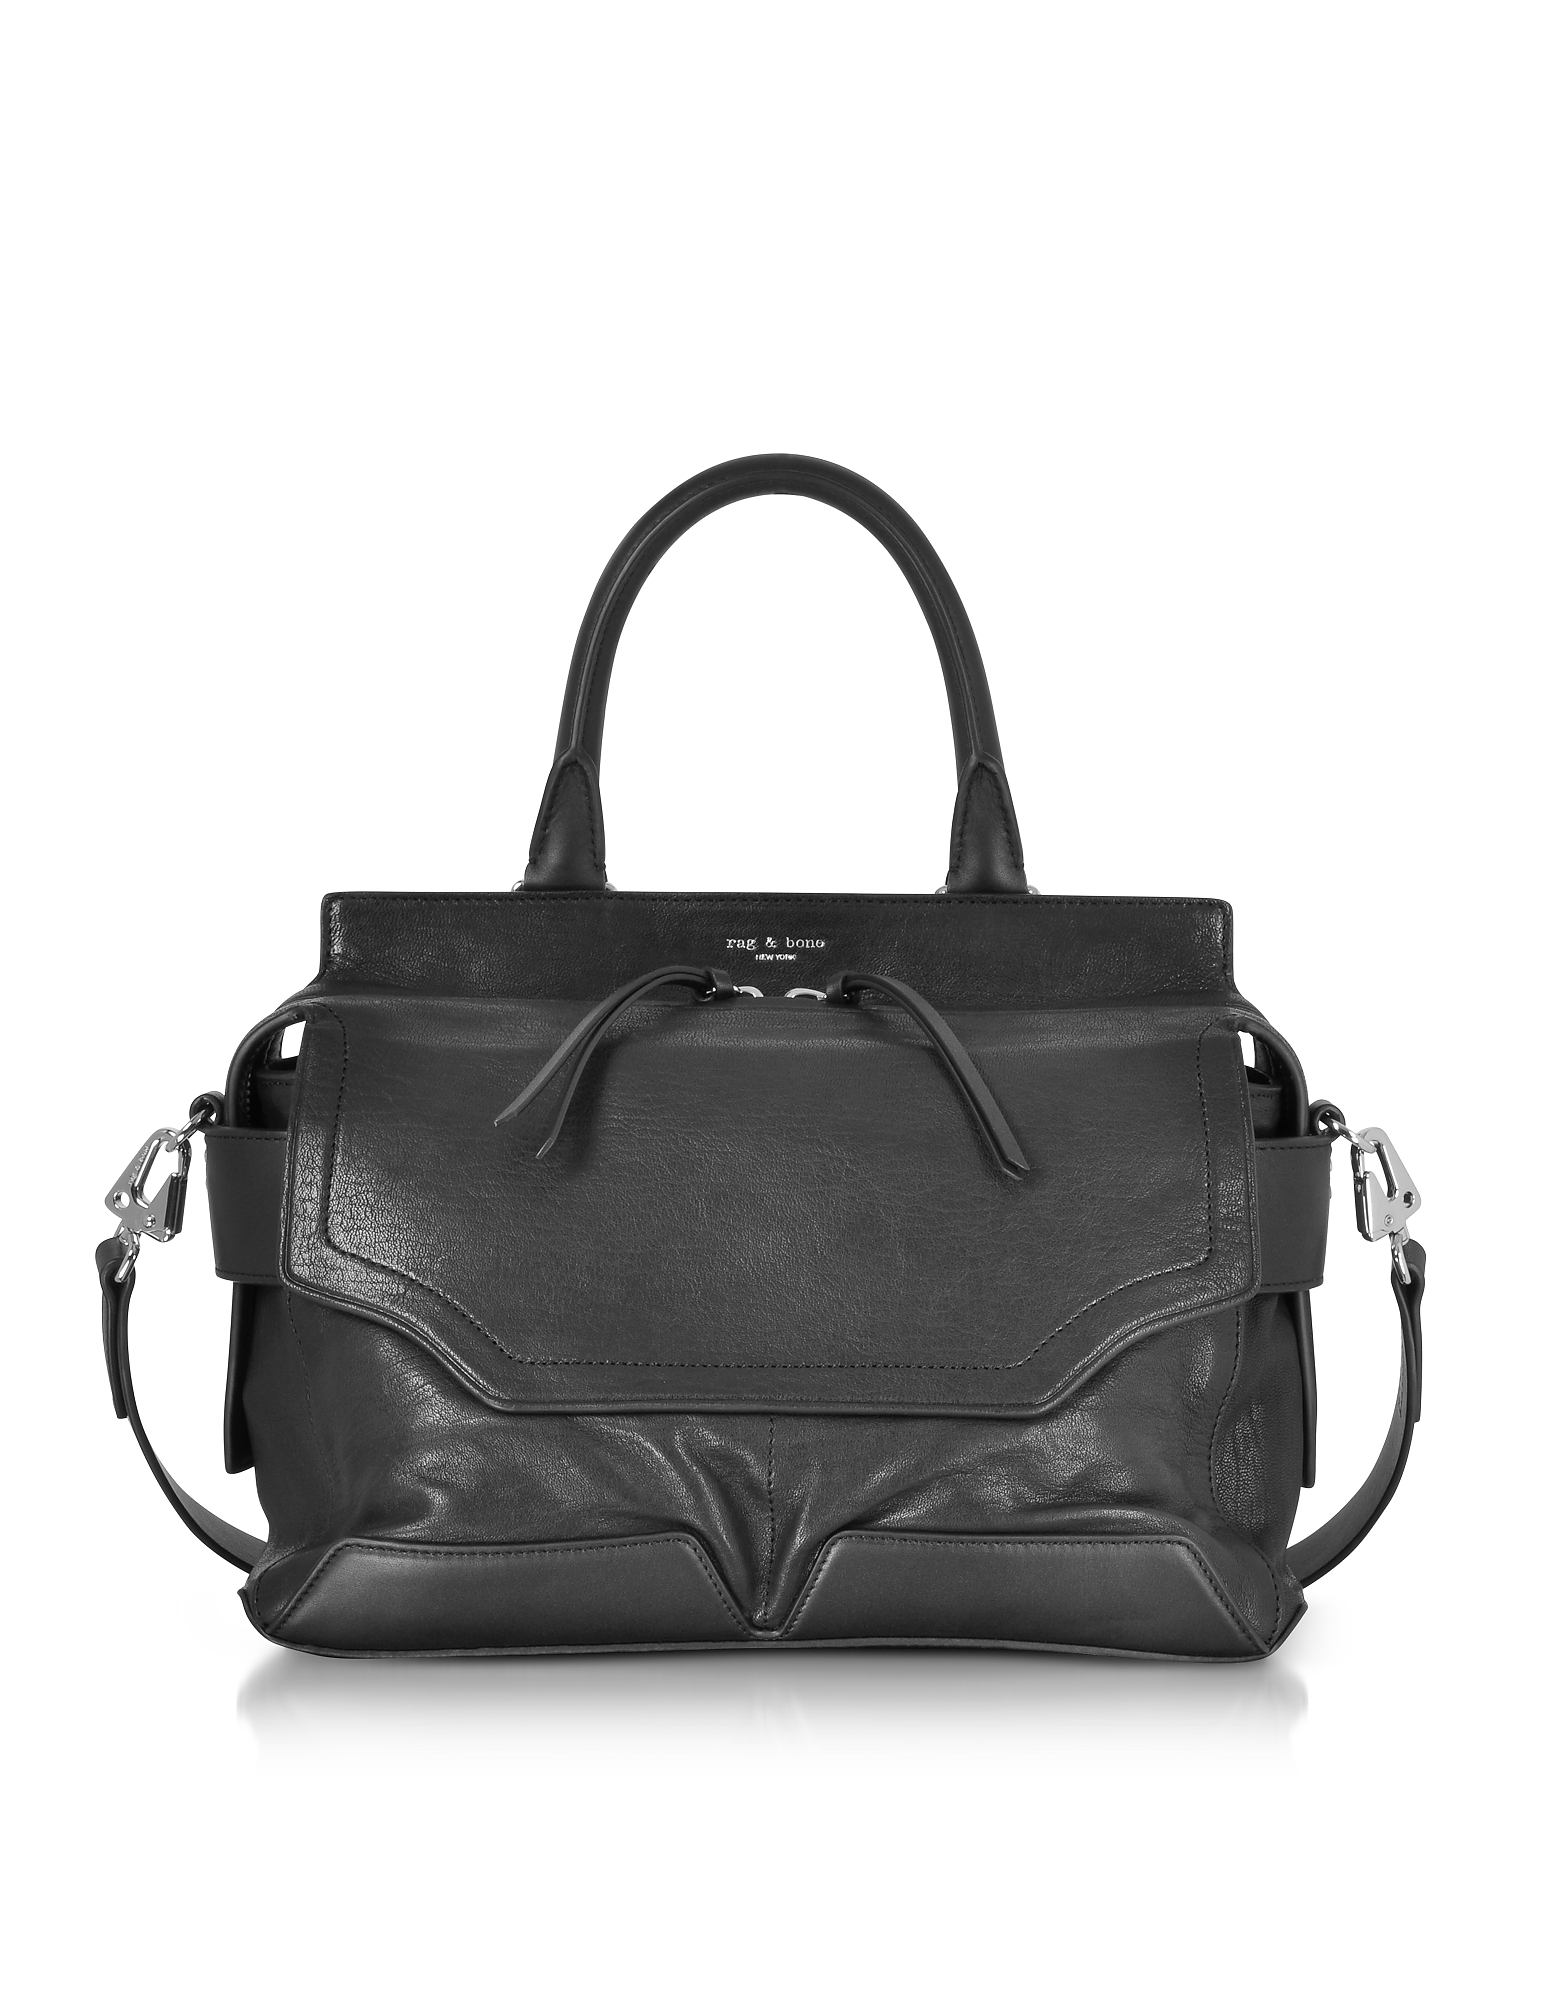 Rag & Bone Handbags, Black Leather Pilot Satchel Bag